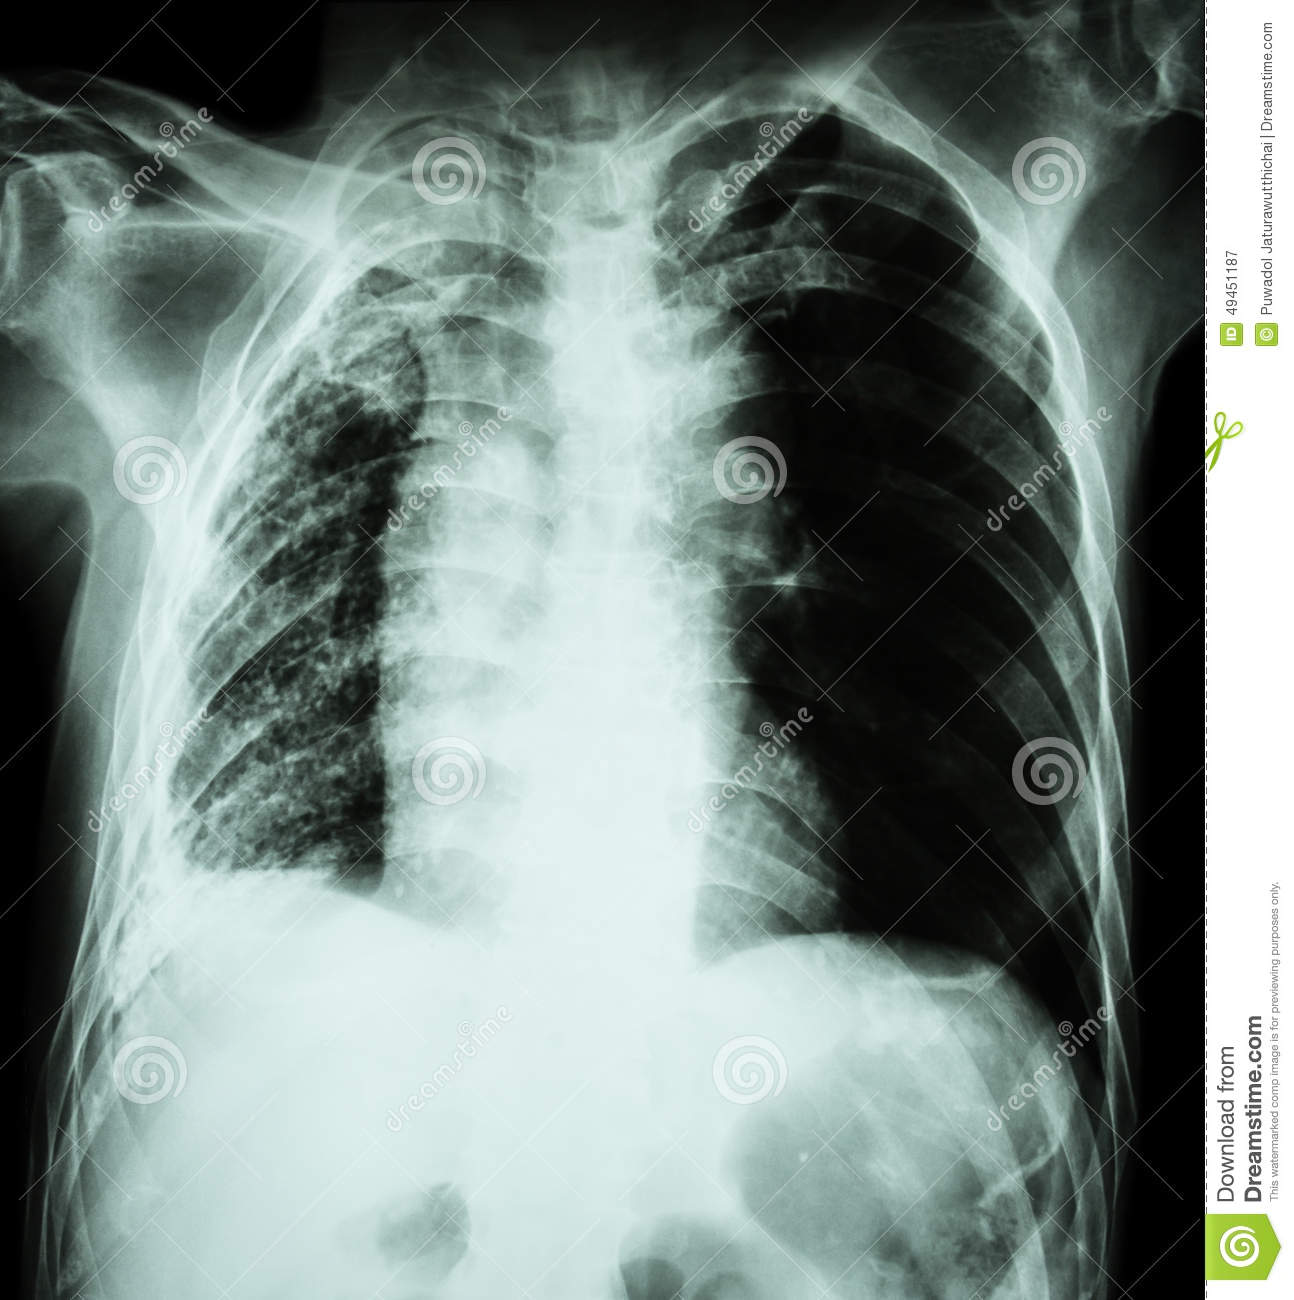 Pulmonary Tuberculosis . Chest X-Ray : Right Lung